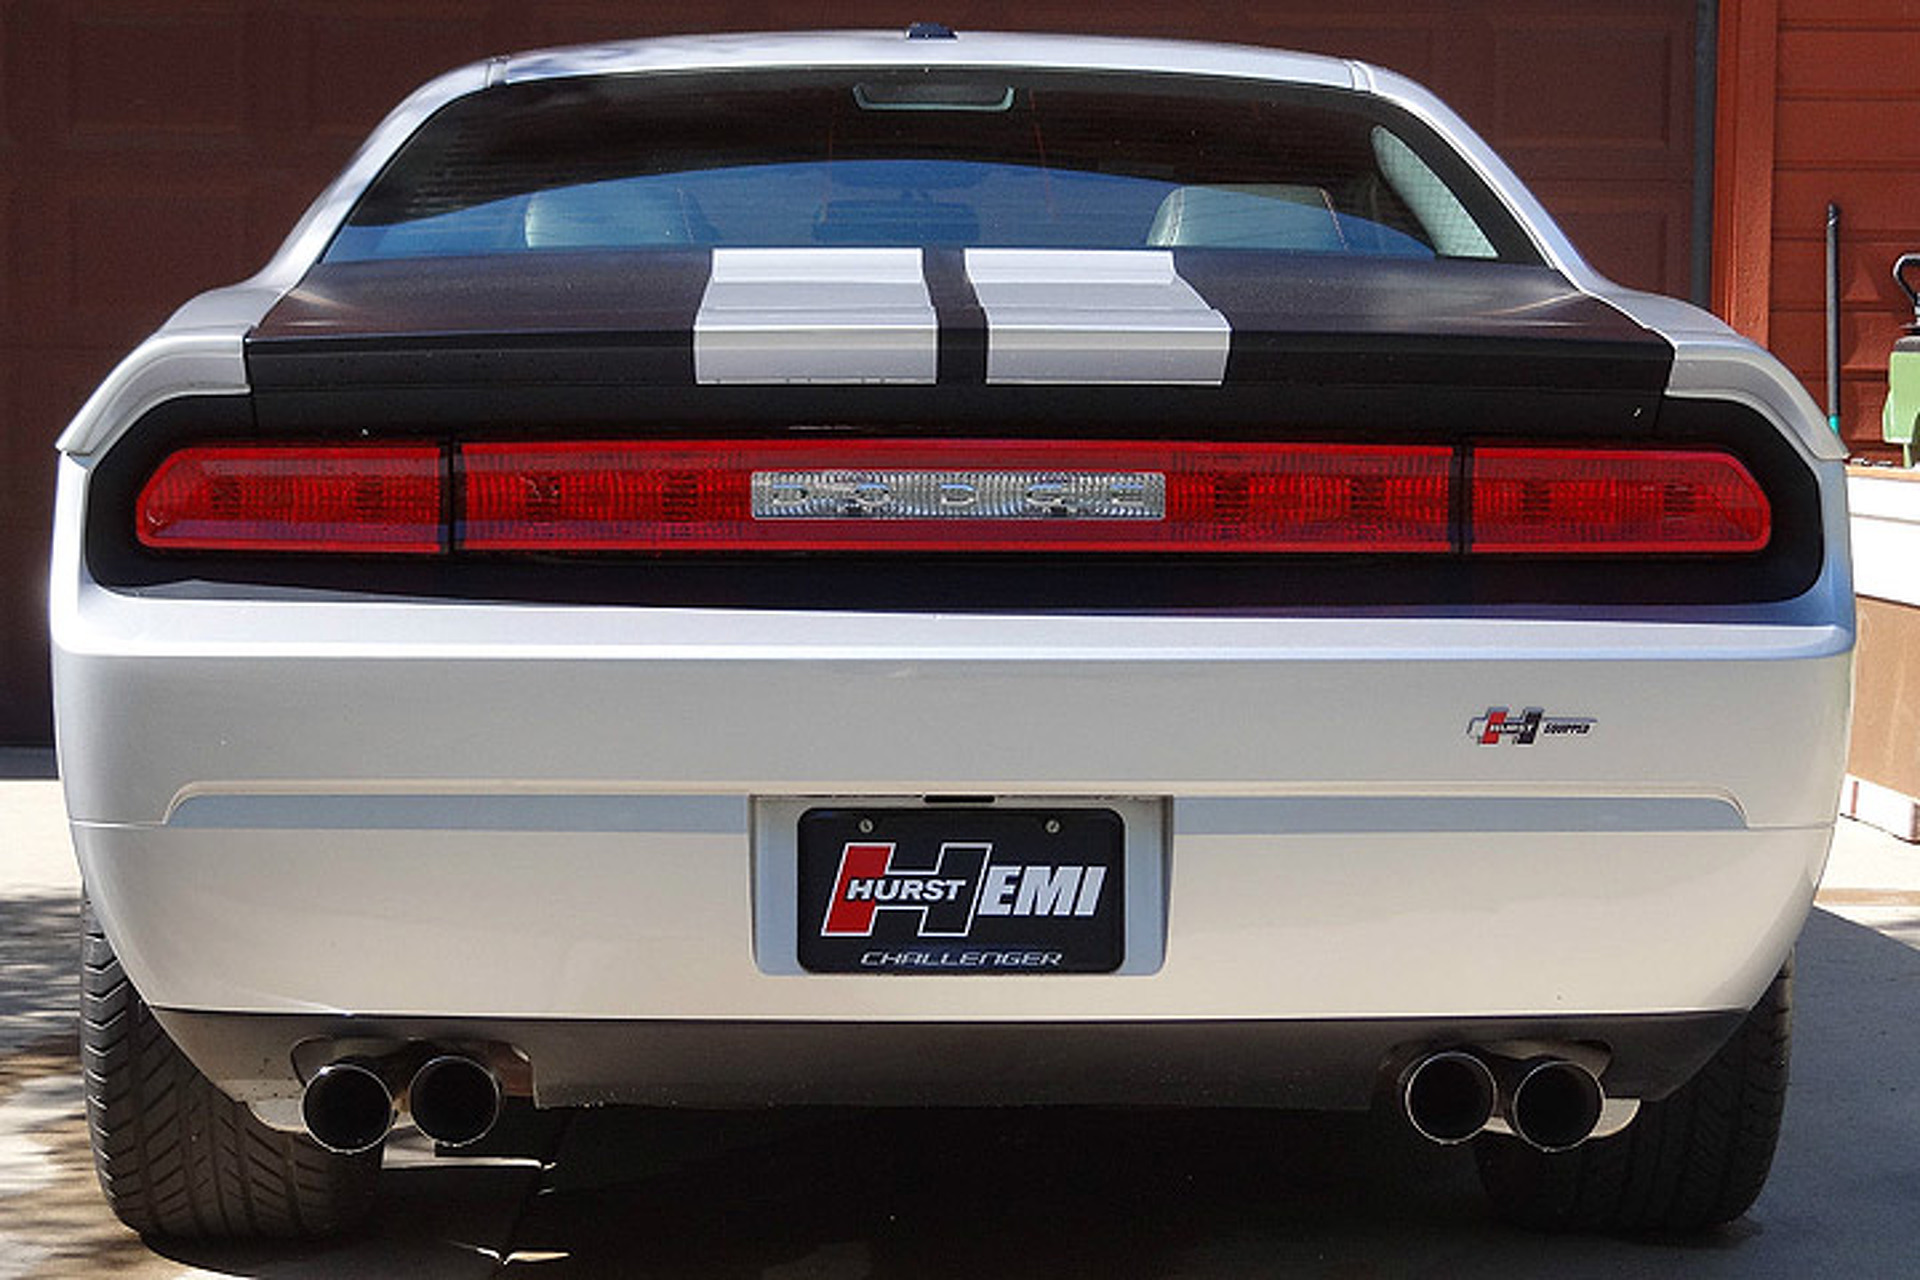 Make No Mistake, This is One Rare Hurst Dodge Challenger